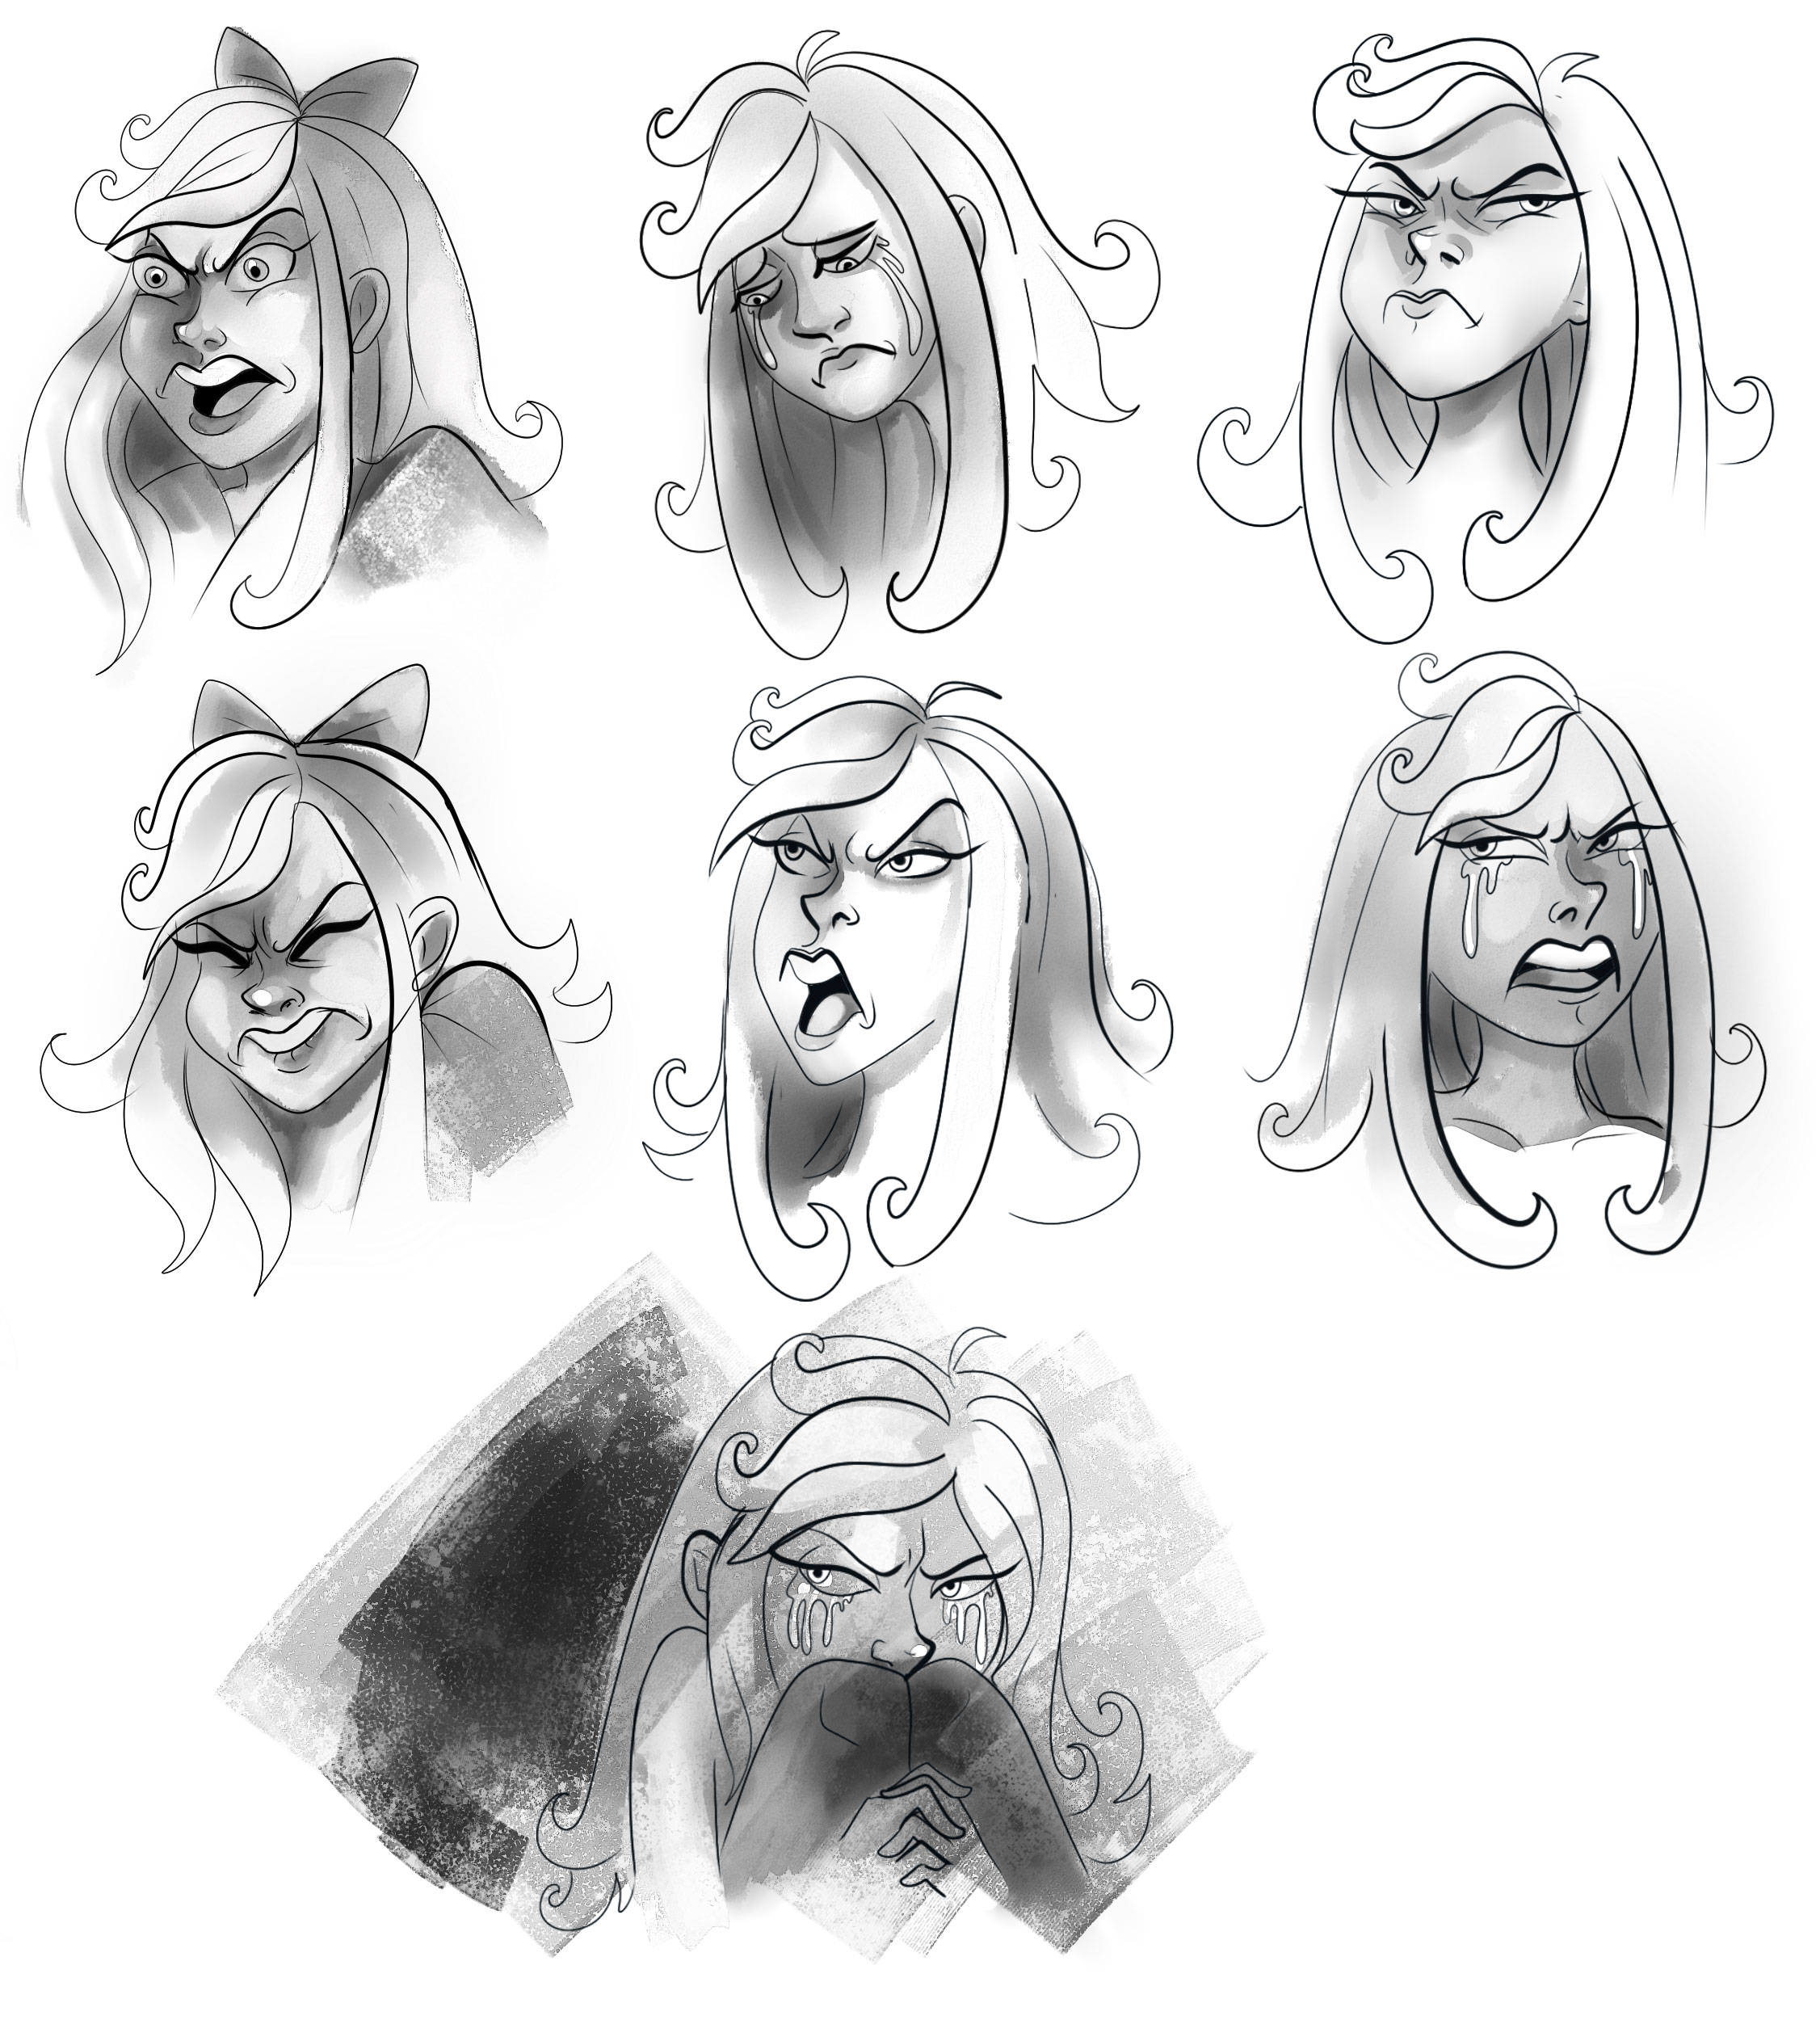 Mary sketches